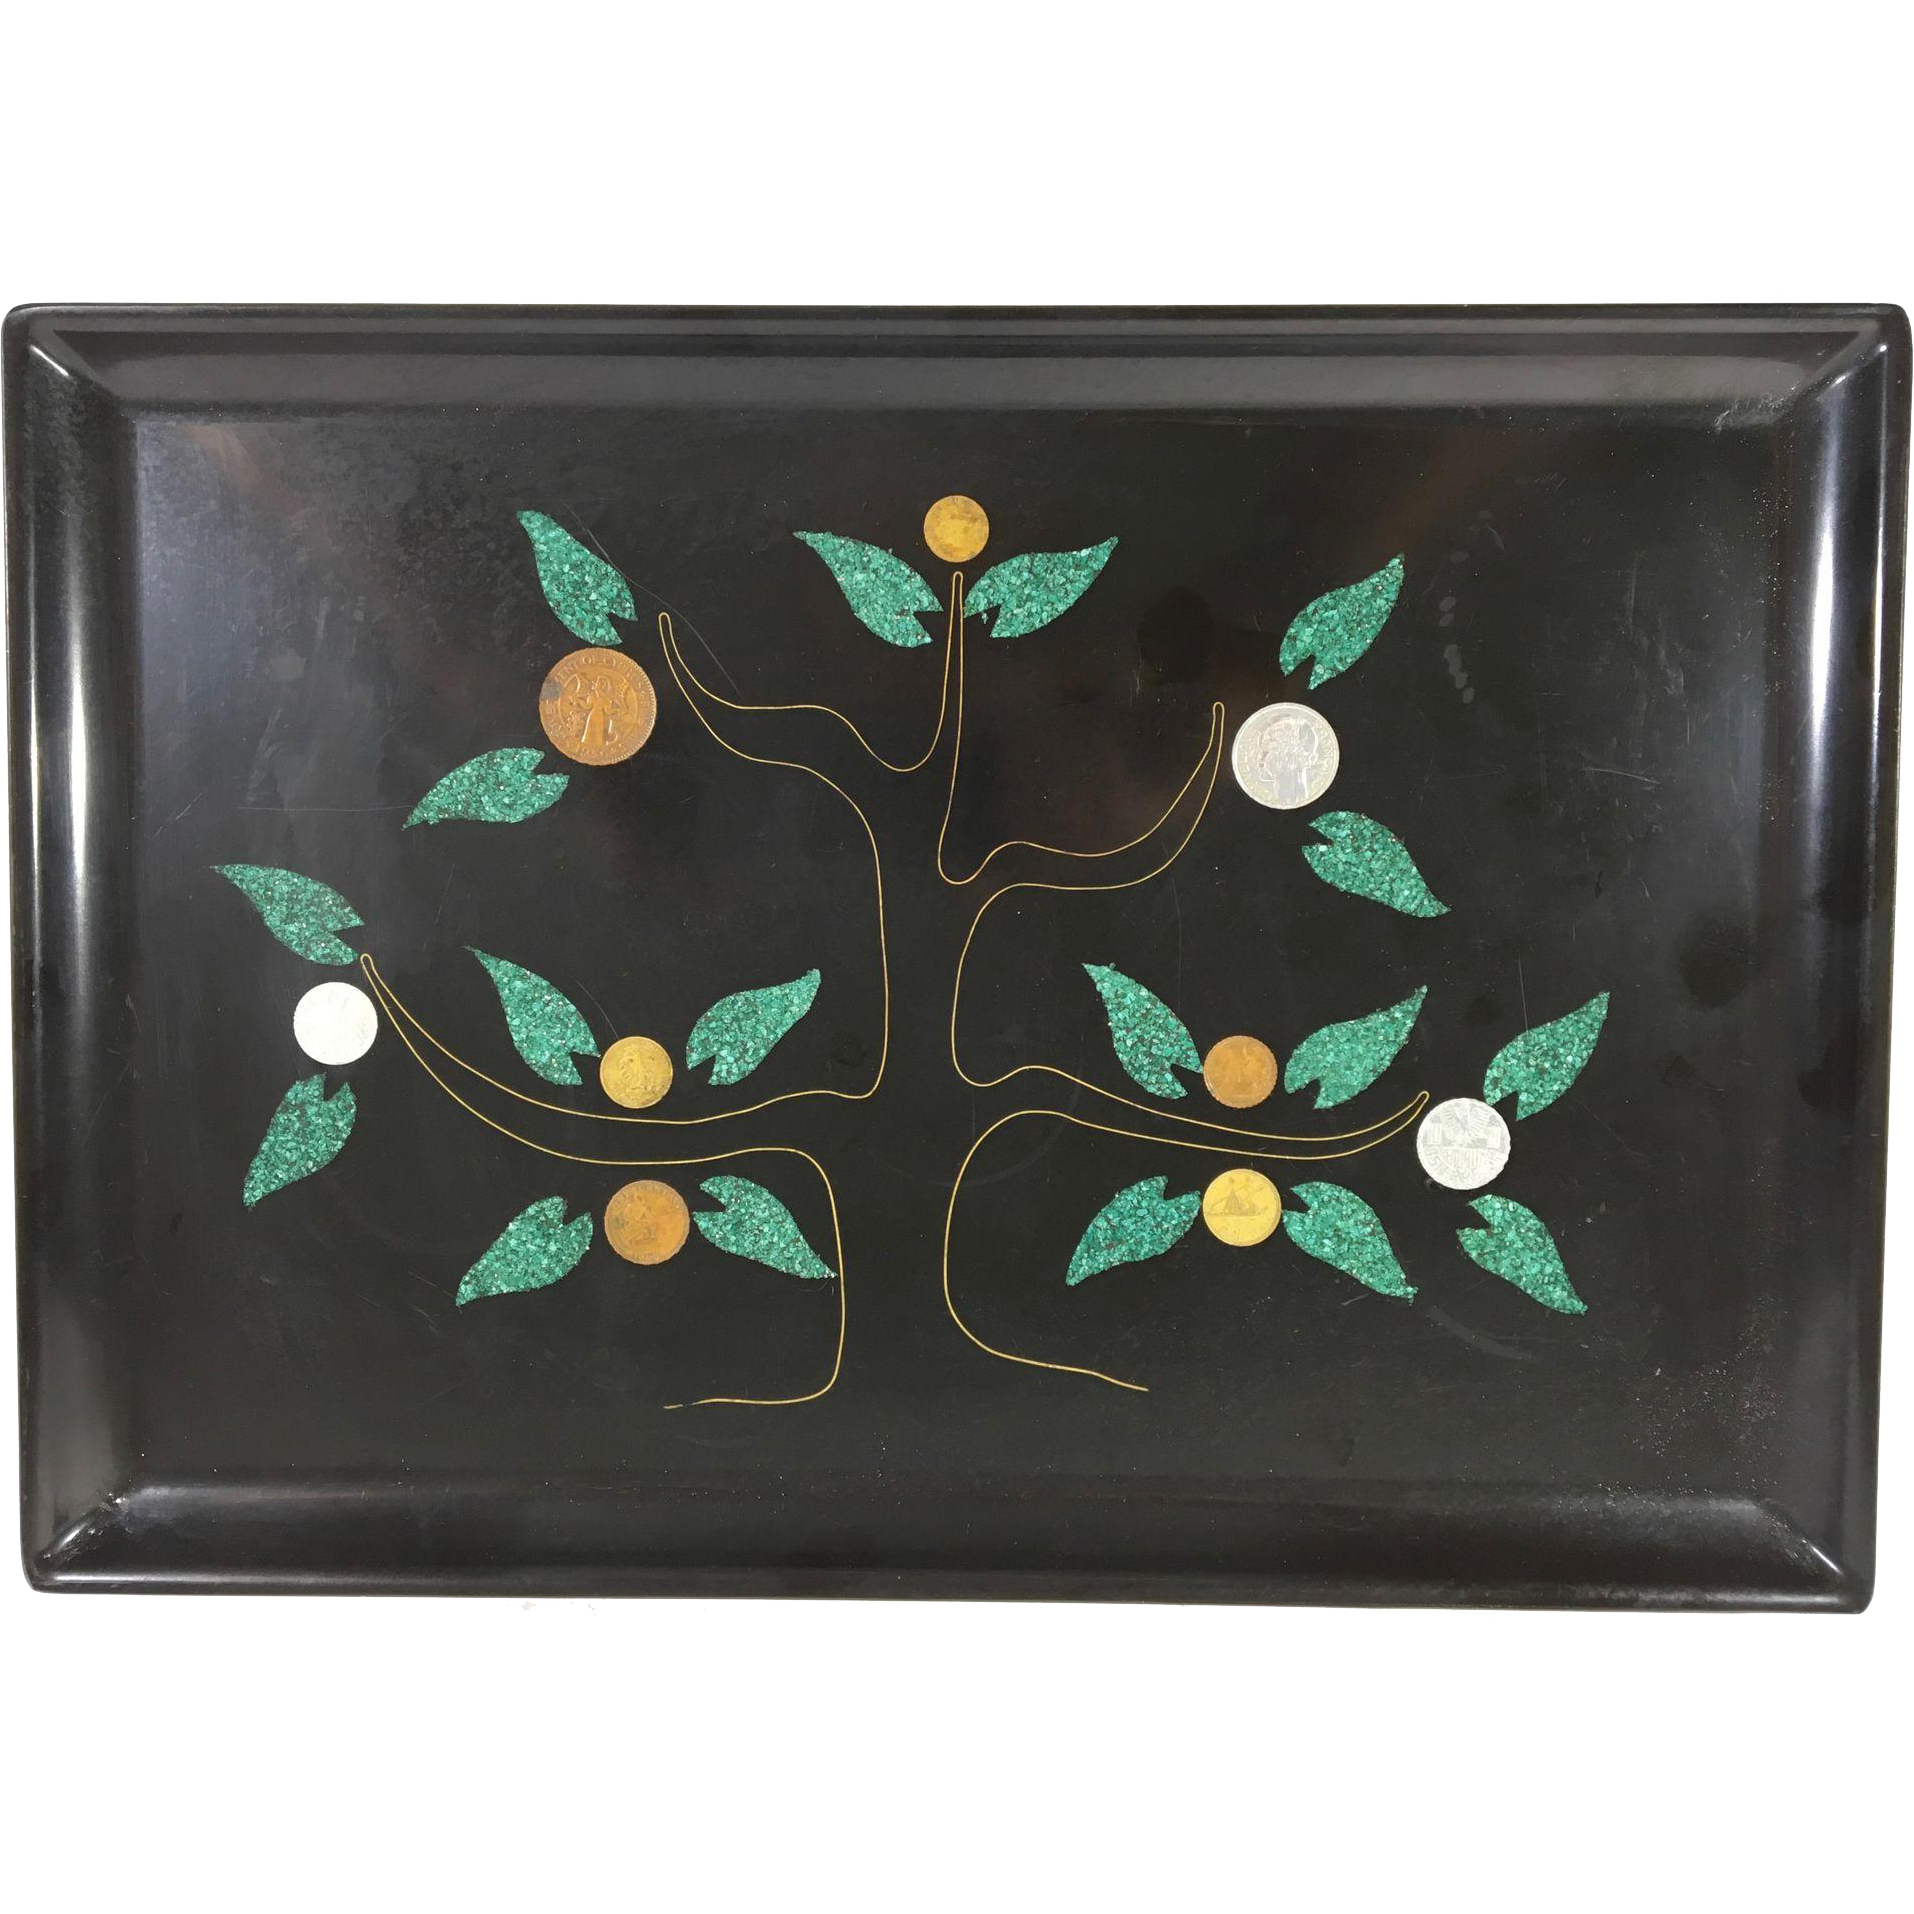 Vintage Couroc Lacquer Tray